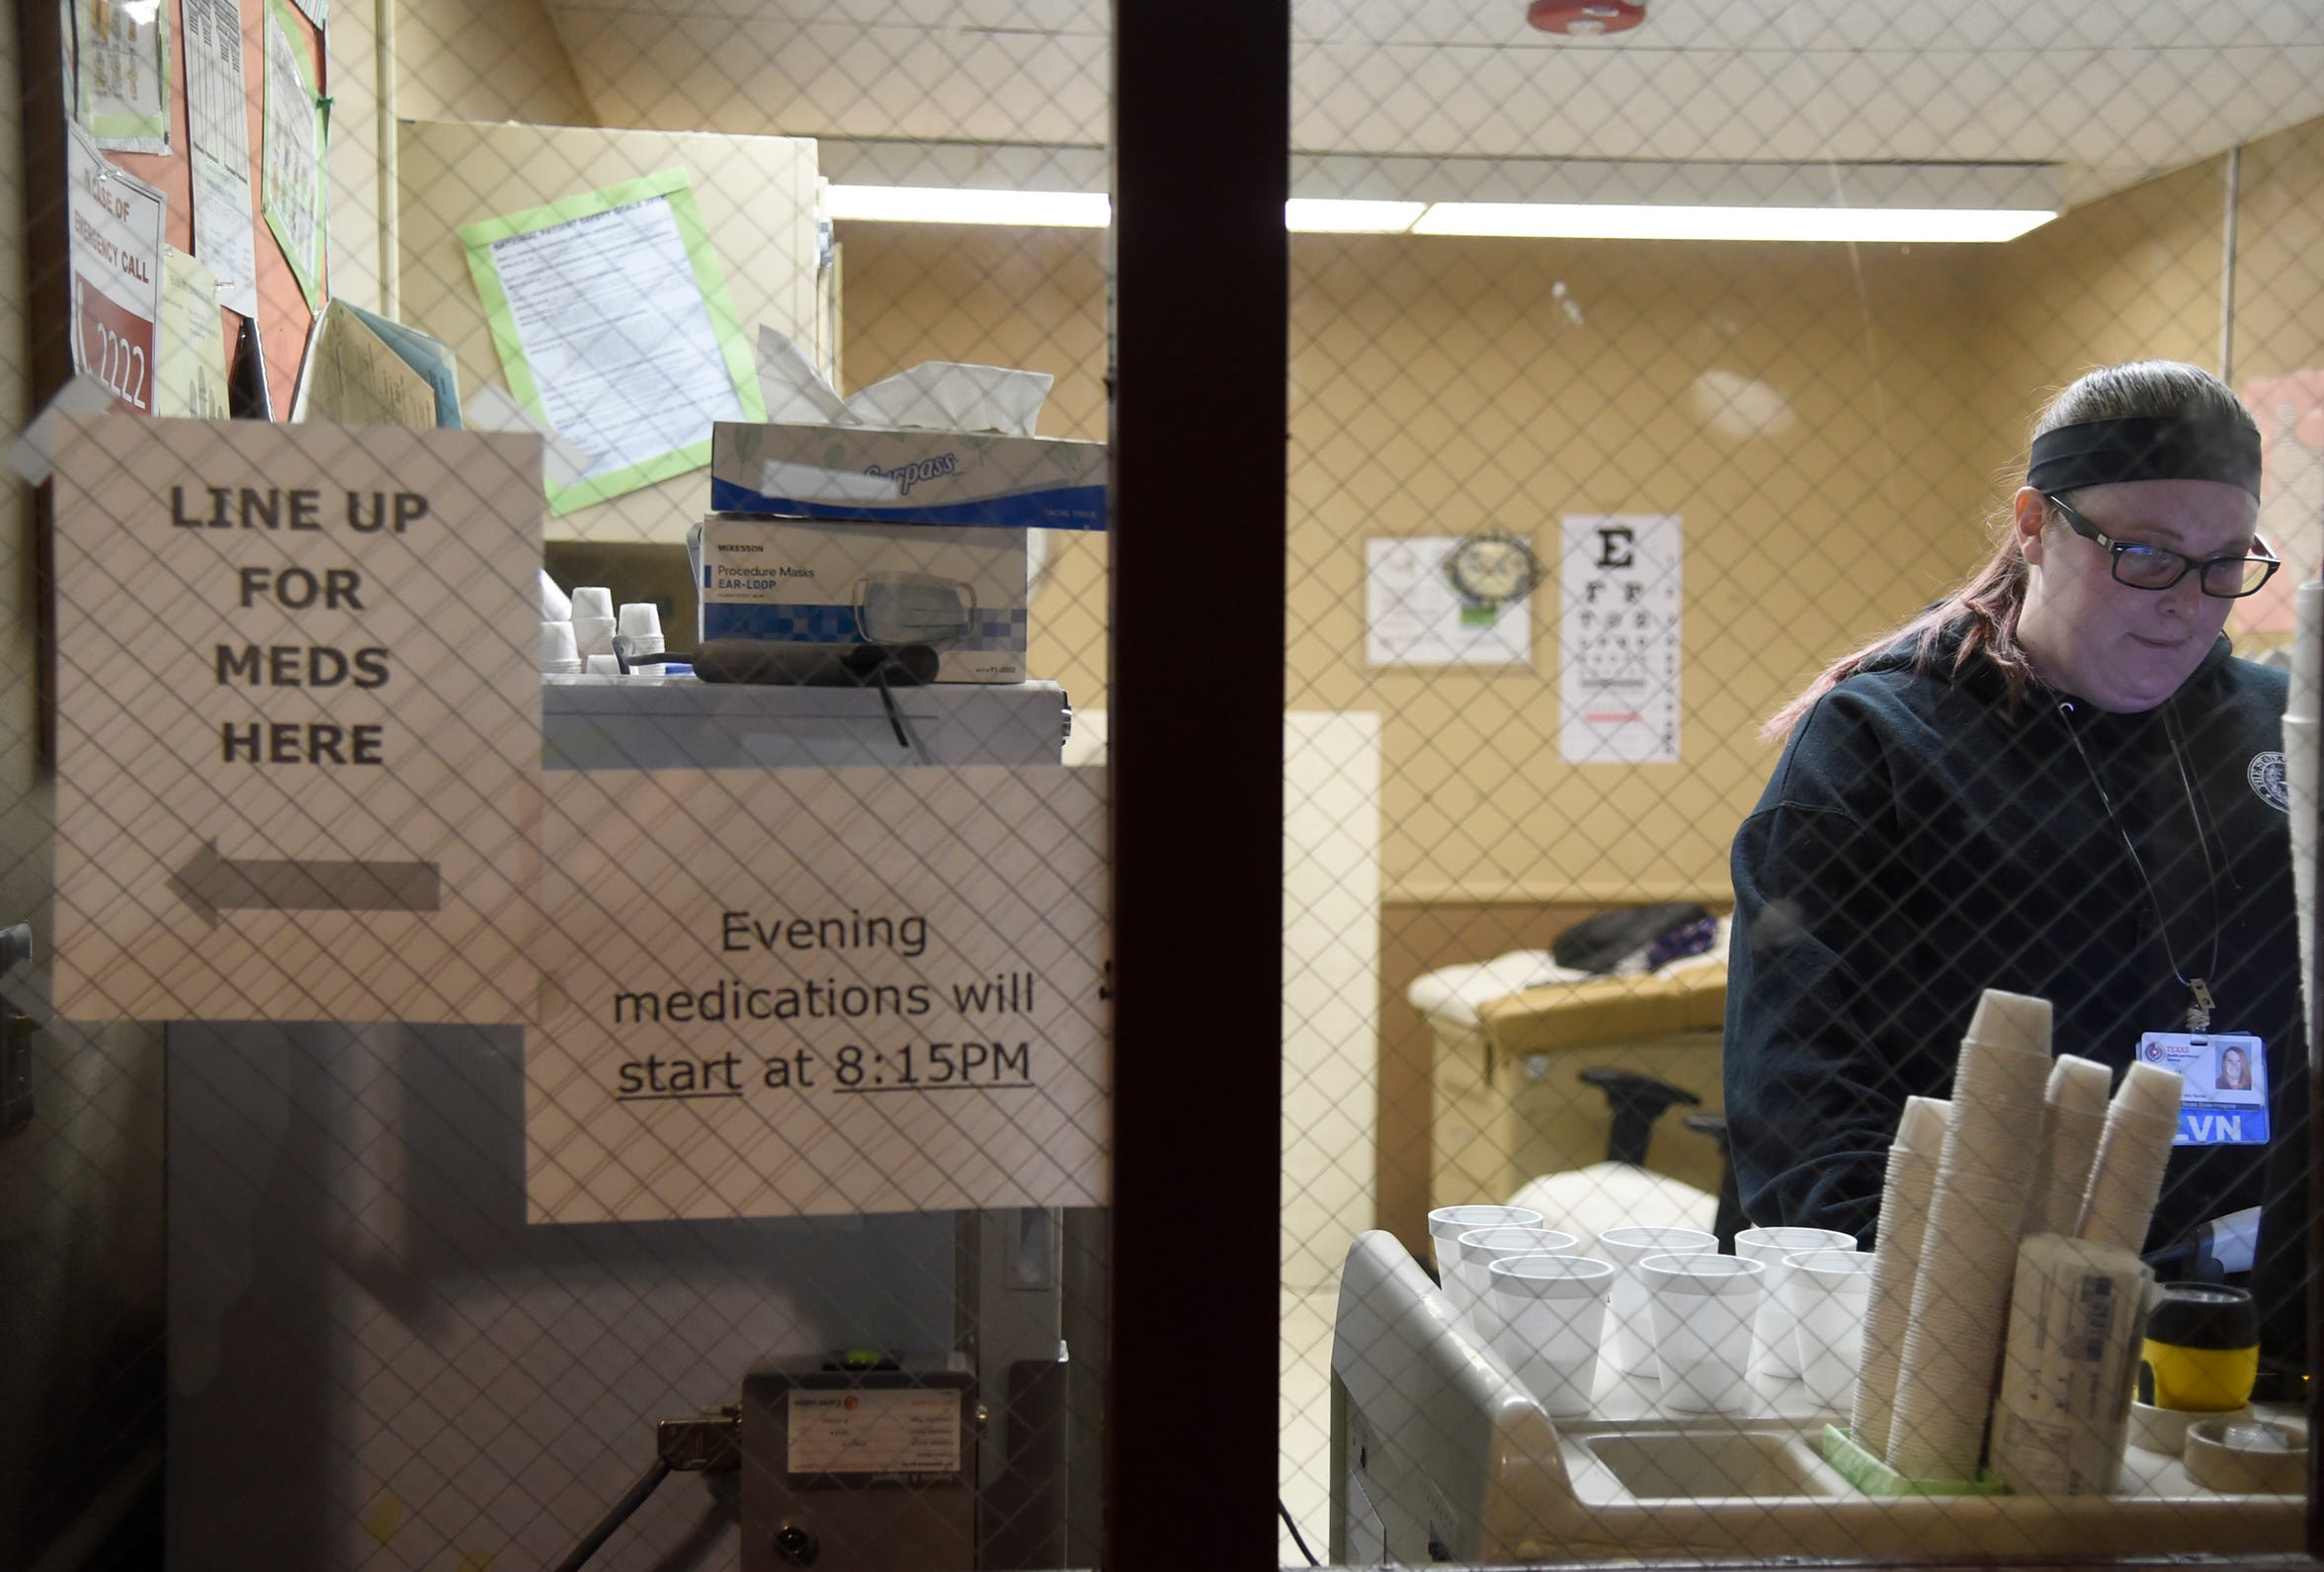 A North Texas State Hospital nurse prepares medication for patients, Monday, April 8, 2019, in Vernon, Texas.